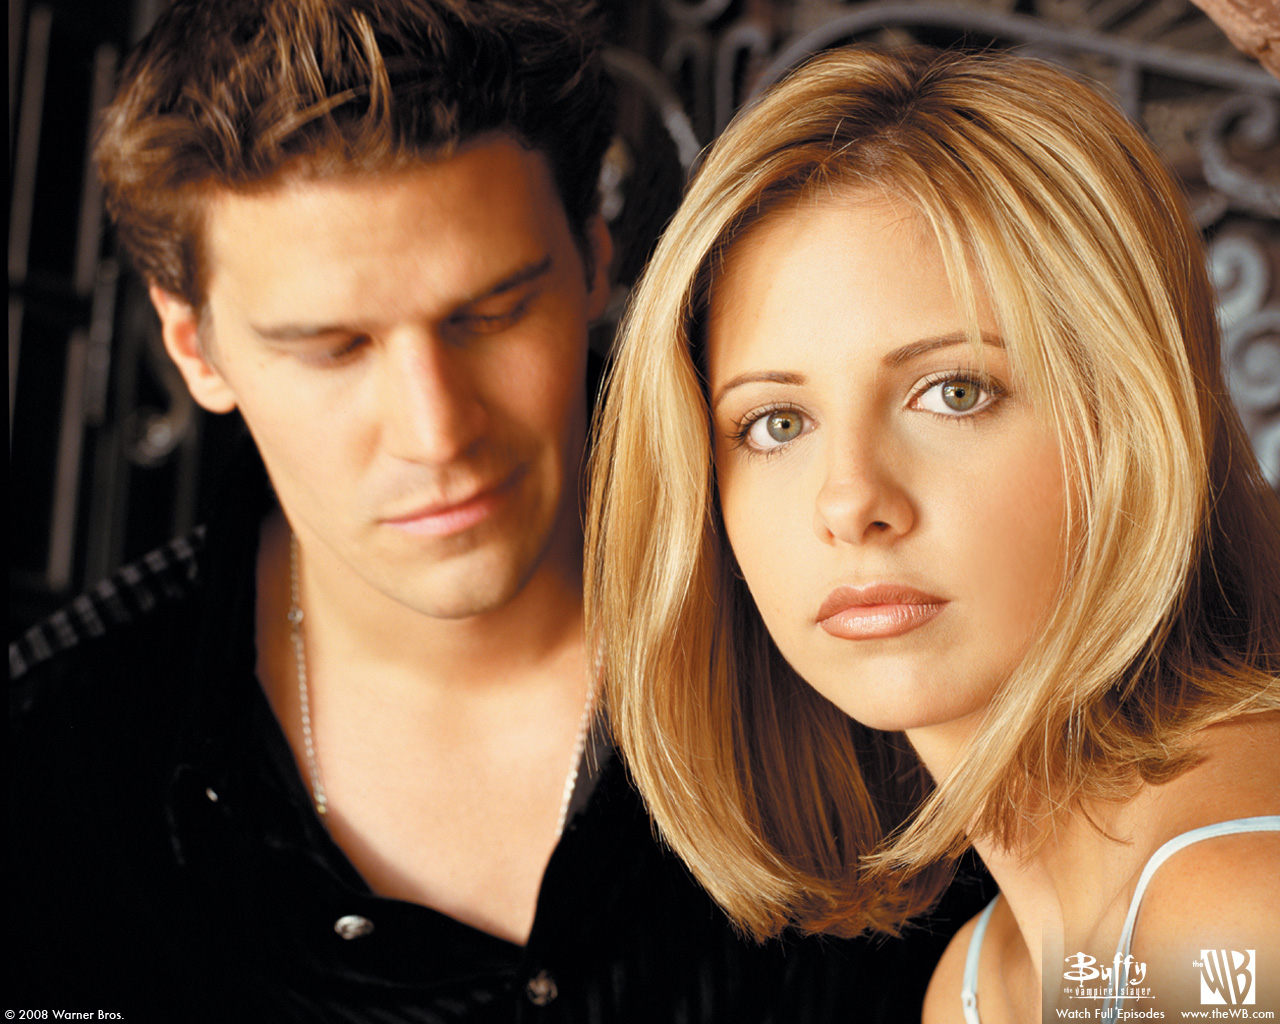 Relationship goals I learned from 'Buffy the Vampire Slayer'